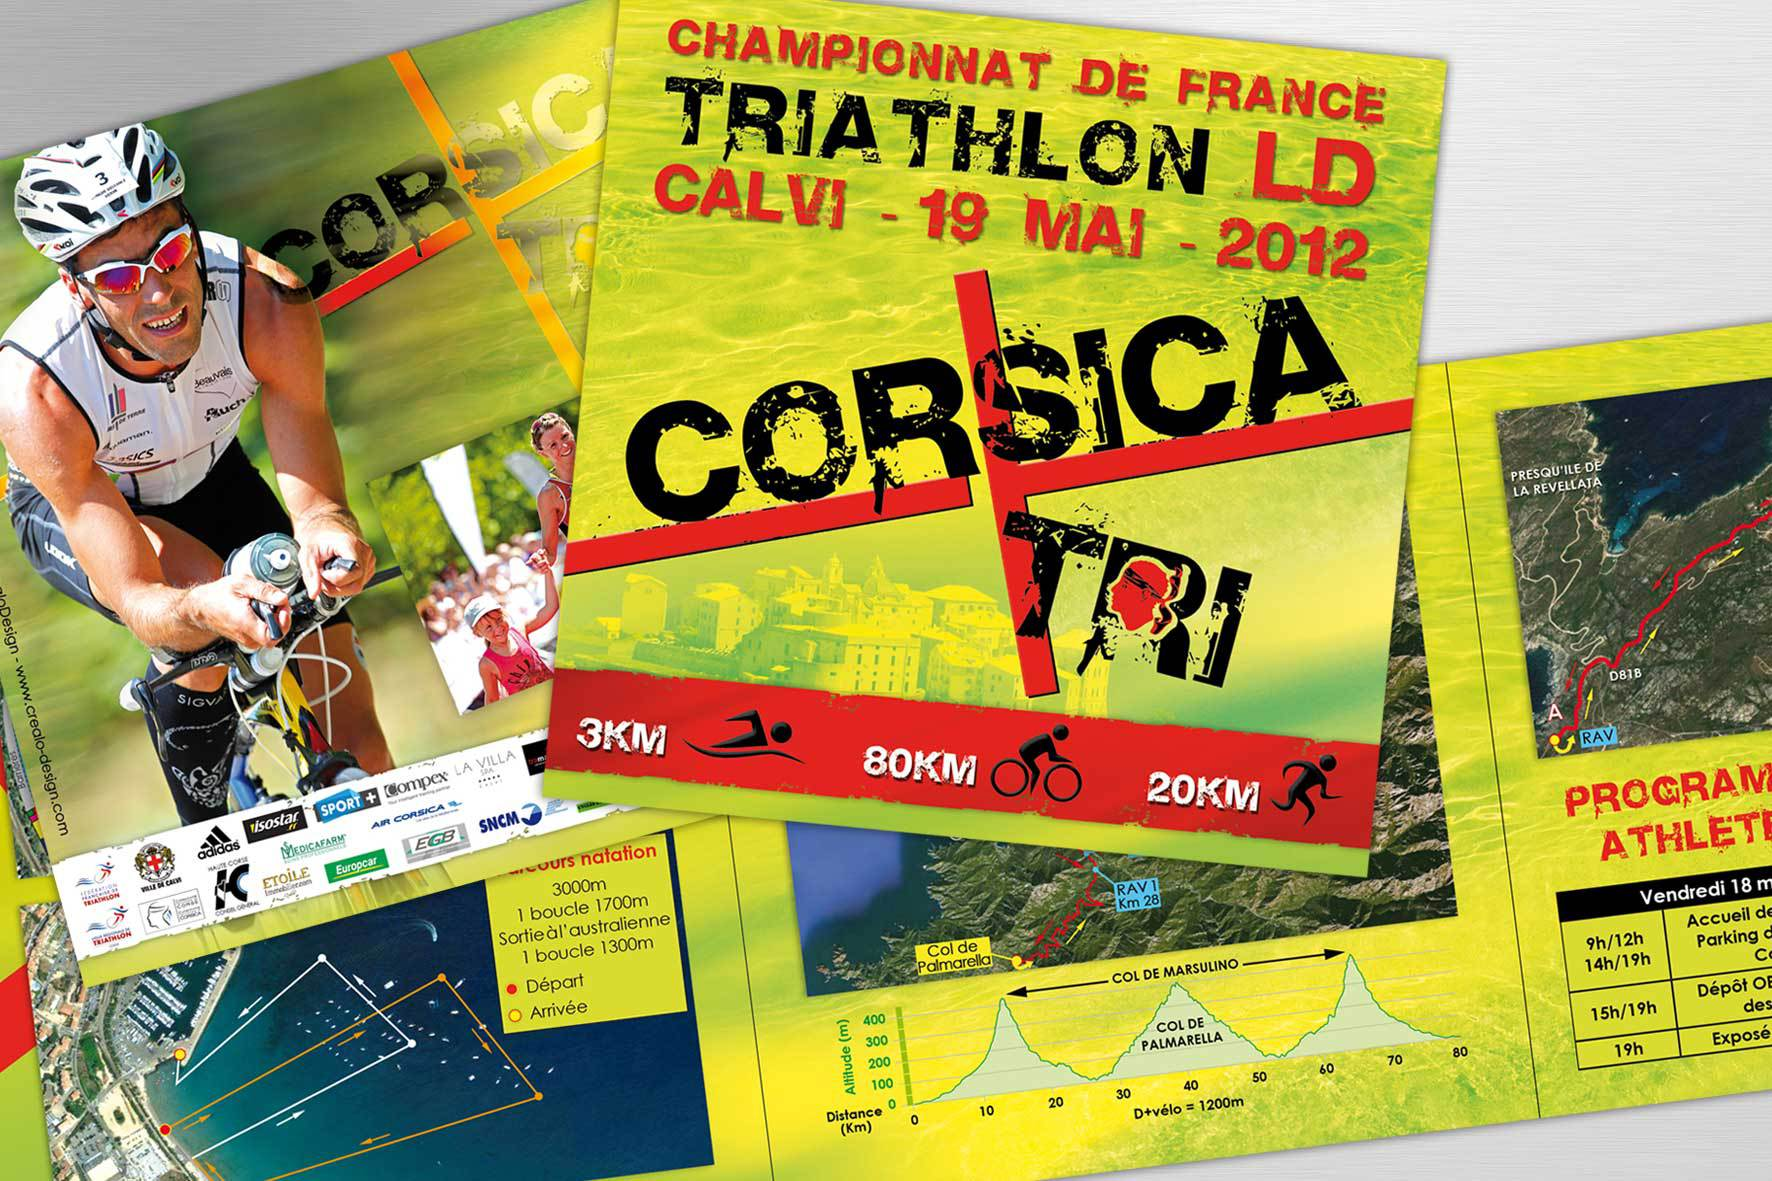 Ligue Corse de Triathlon